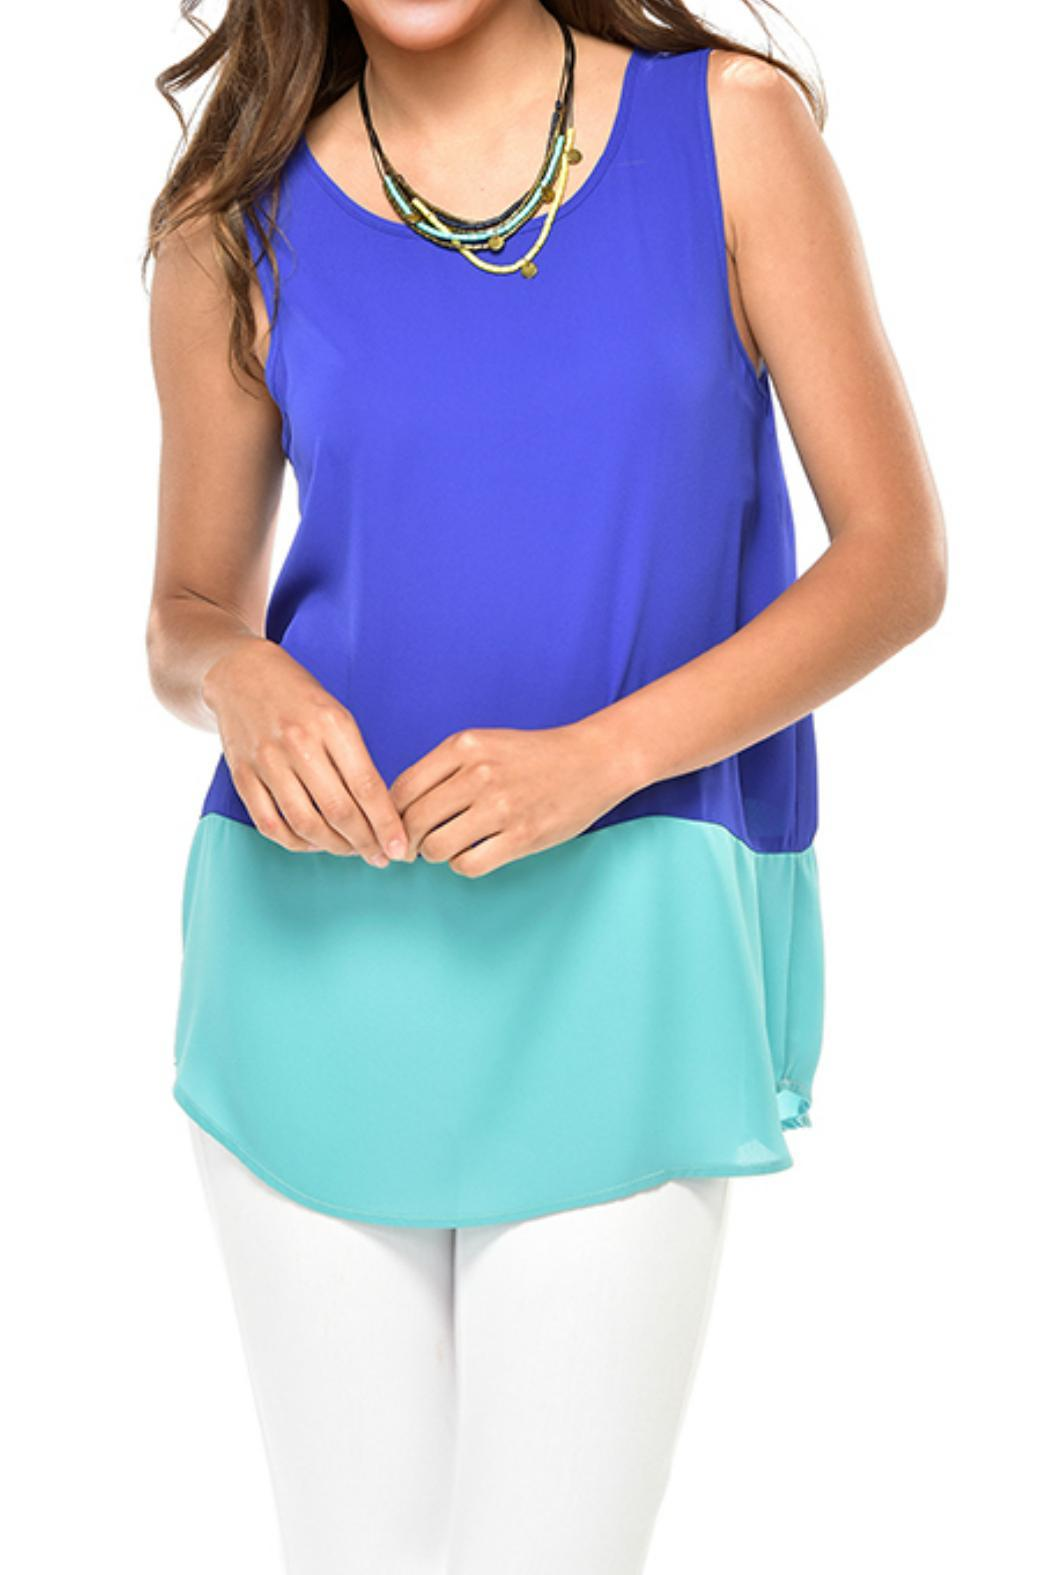 Charlie Paige Color Block Chiffon Top - Front Cropped Image